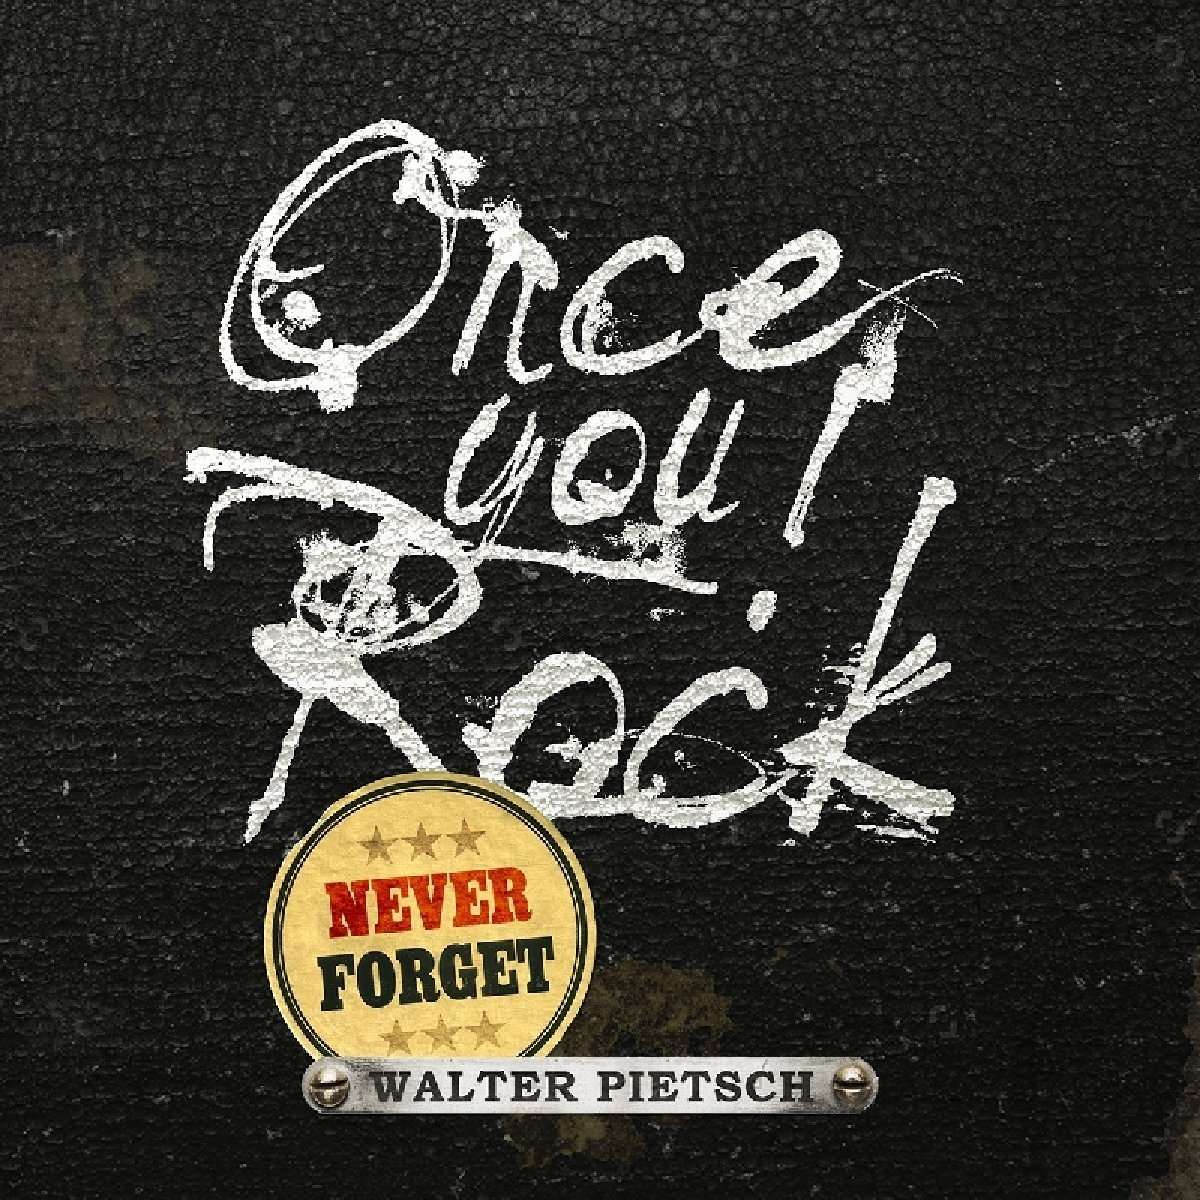 Walter Pietsch: Once You Rock, Never Forget (2016) Book Cover